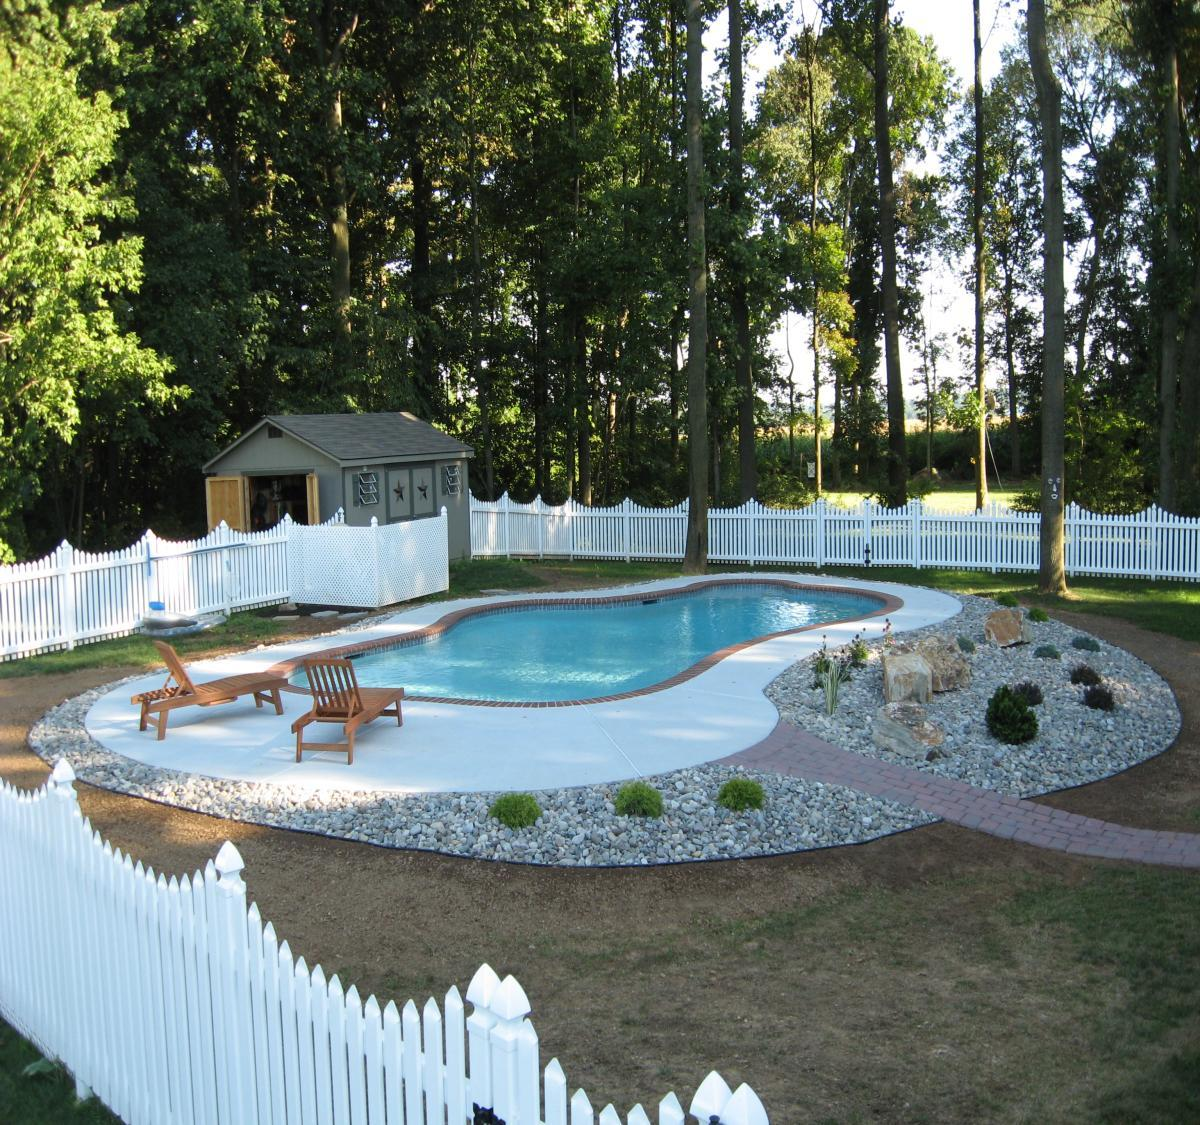 Low maintenance landscaping around pool design and ideas for Decor around swimming pool